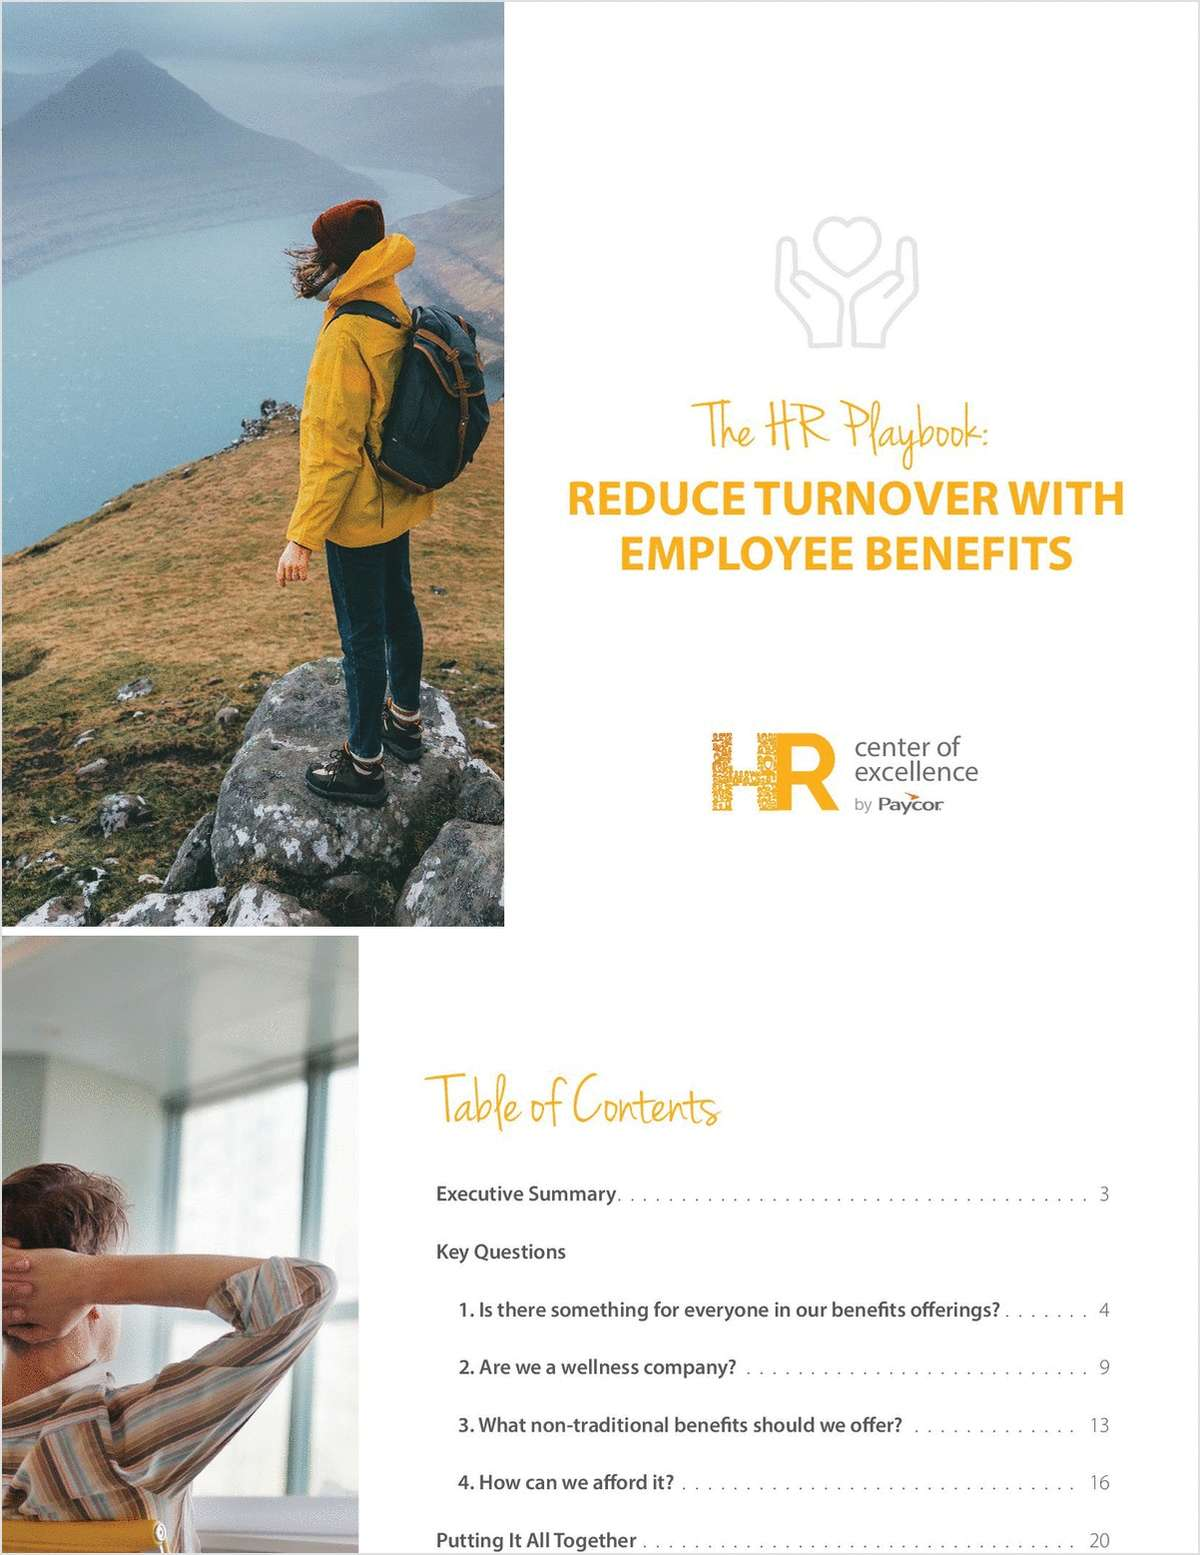 The HR Playbook: Reduce Turnover with Employee Benefits